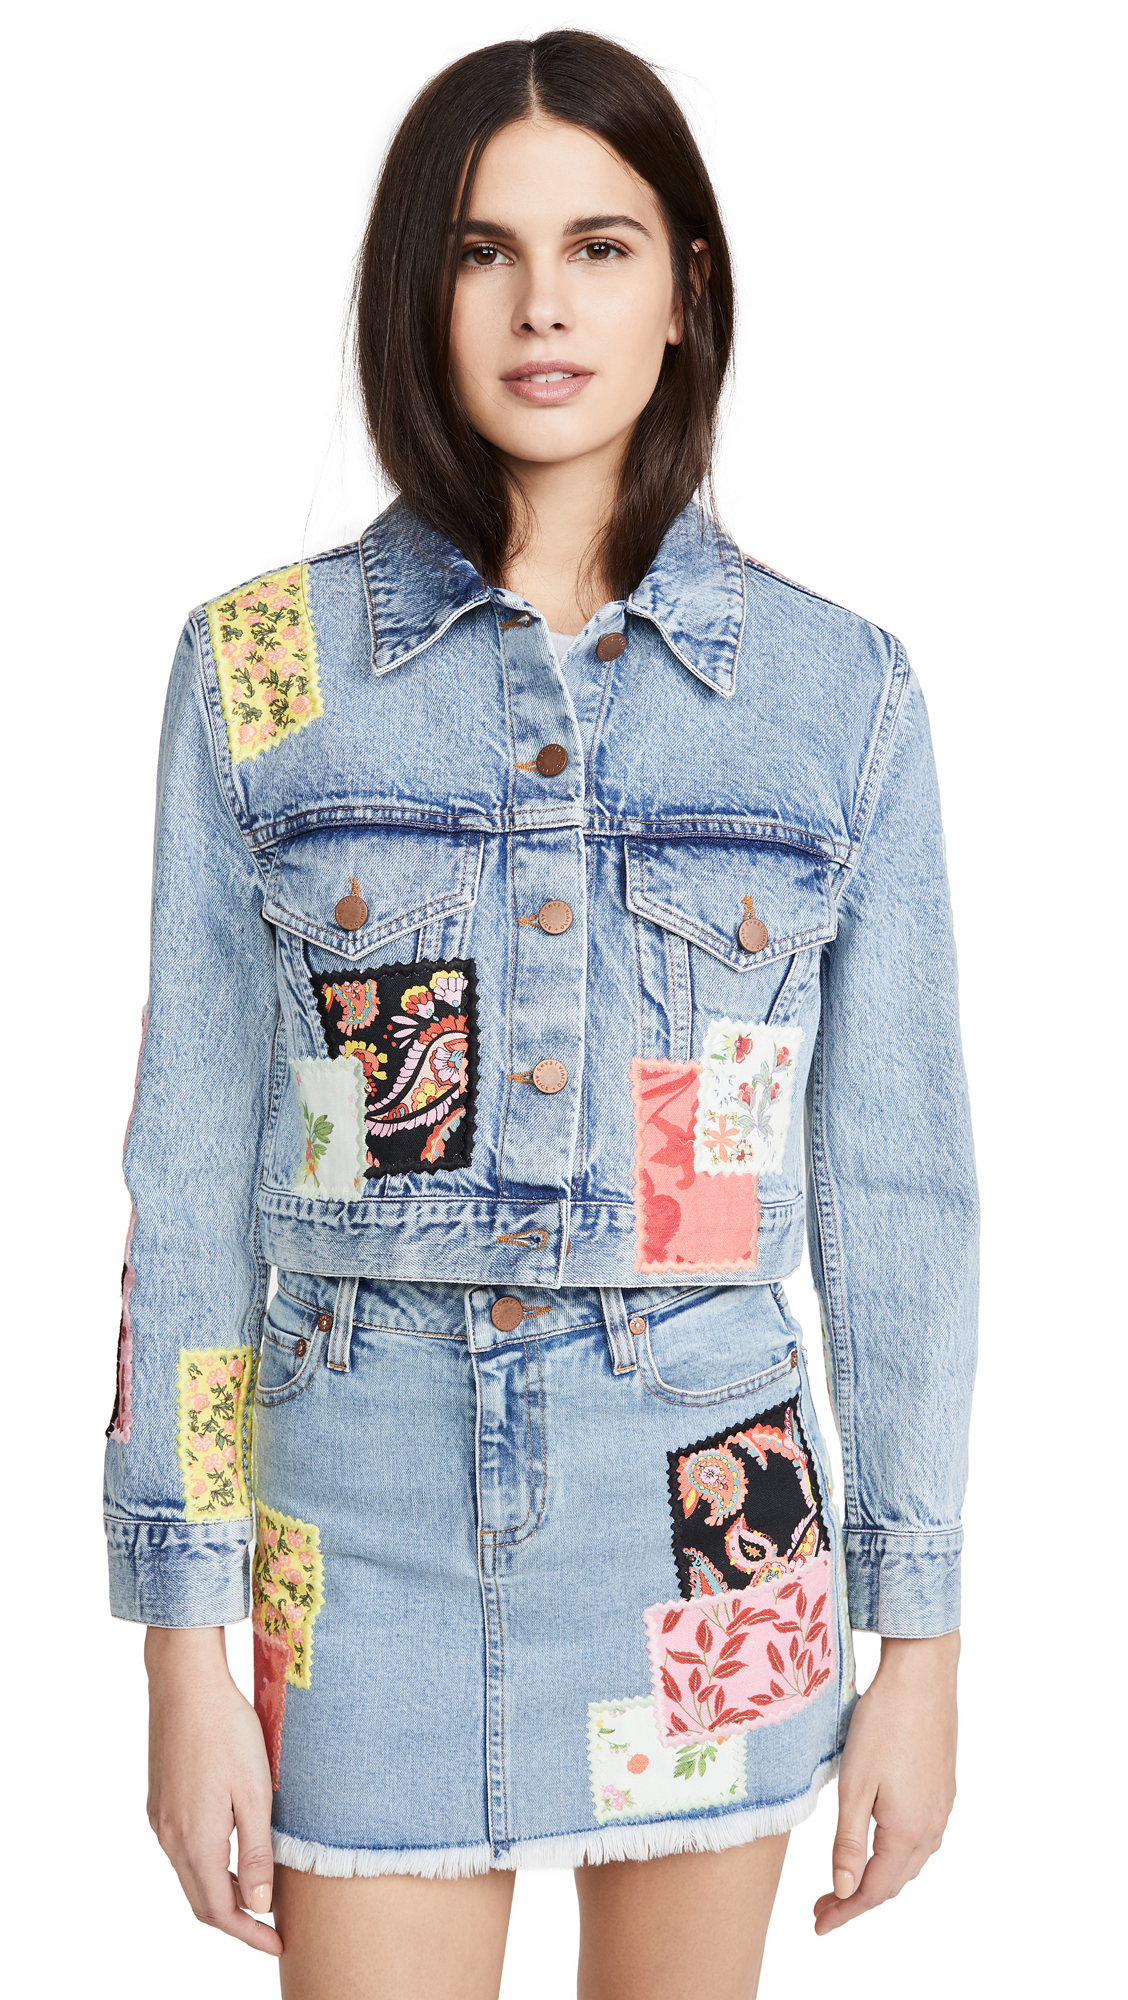 Buy ALICE + OLIVIA JEANS Crop Boxy Jacket with Patchwork online beautiful ALICE + OLIVIA JEANS Clothing, Jackets